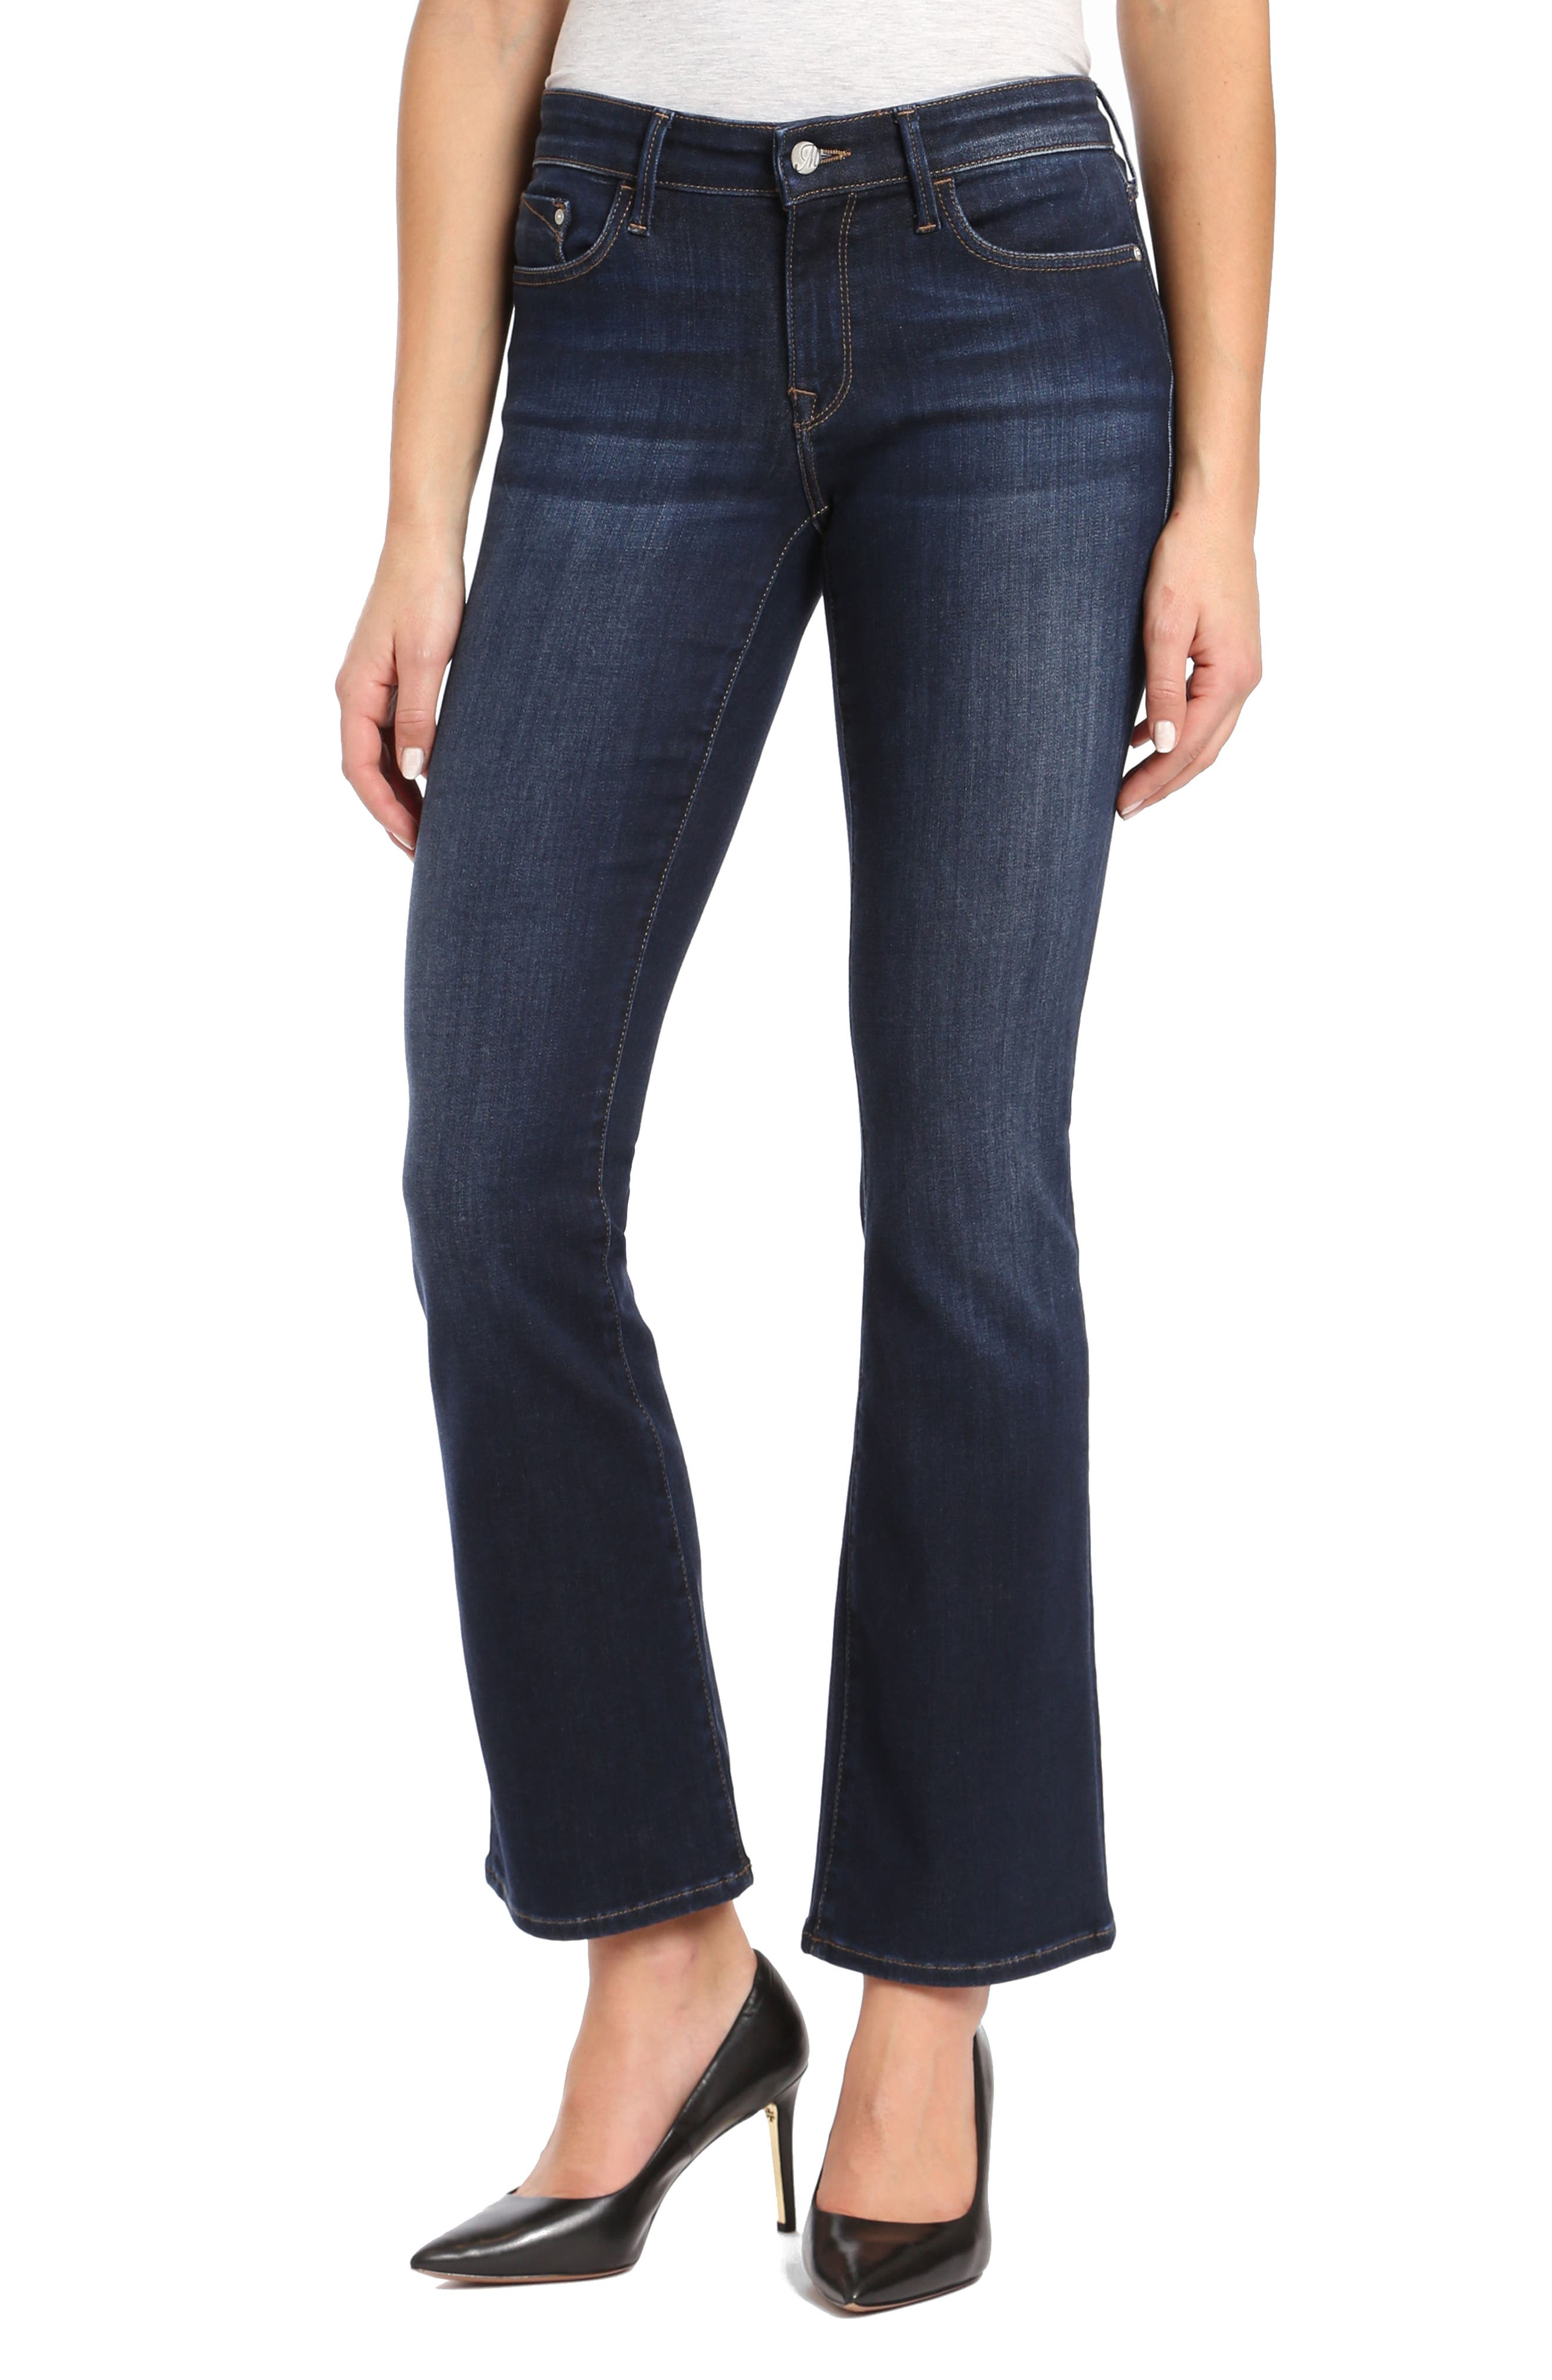 Molly Classic Bootcuts Jeans,                             Main thumbnail 1, color,                             Deep Super Soft